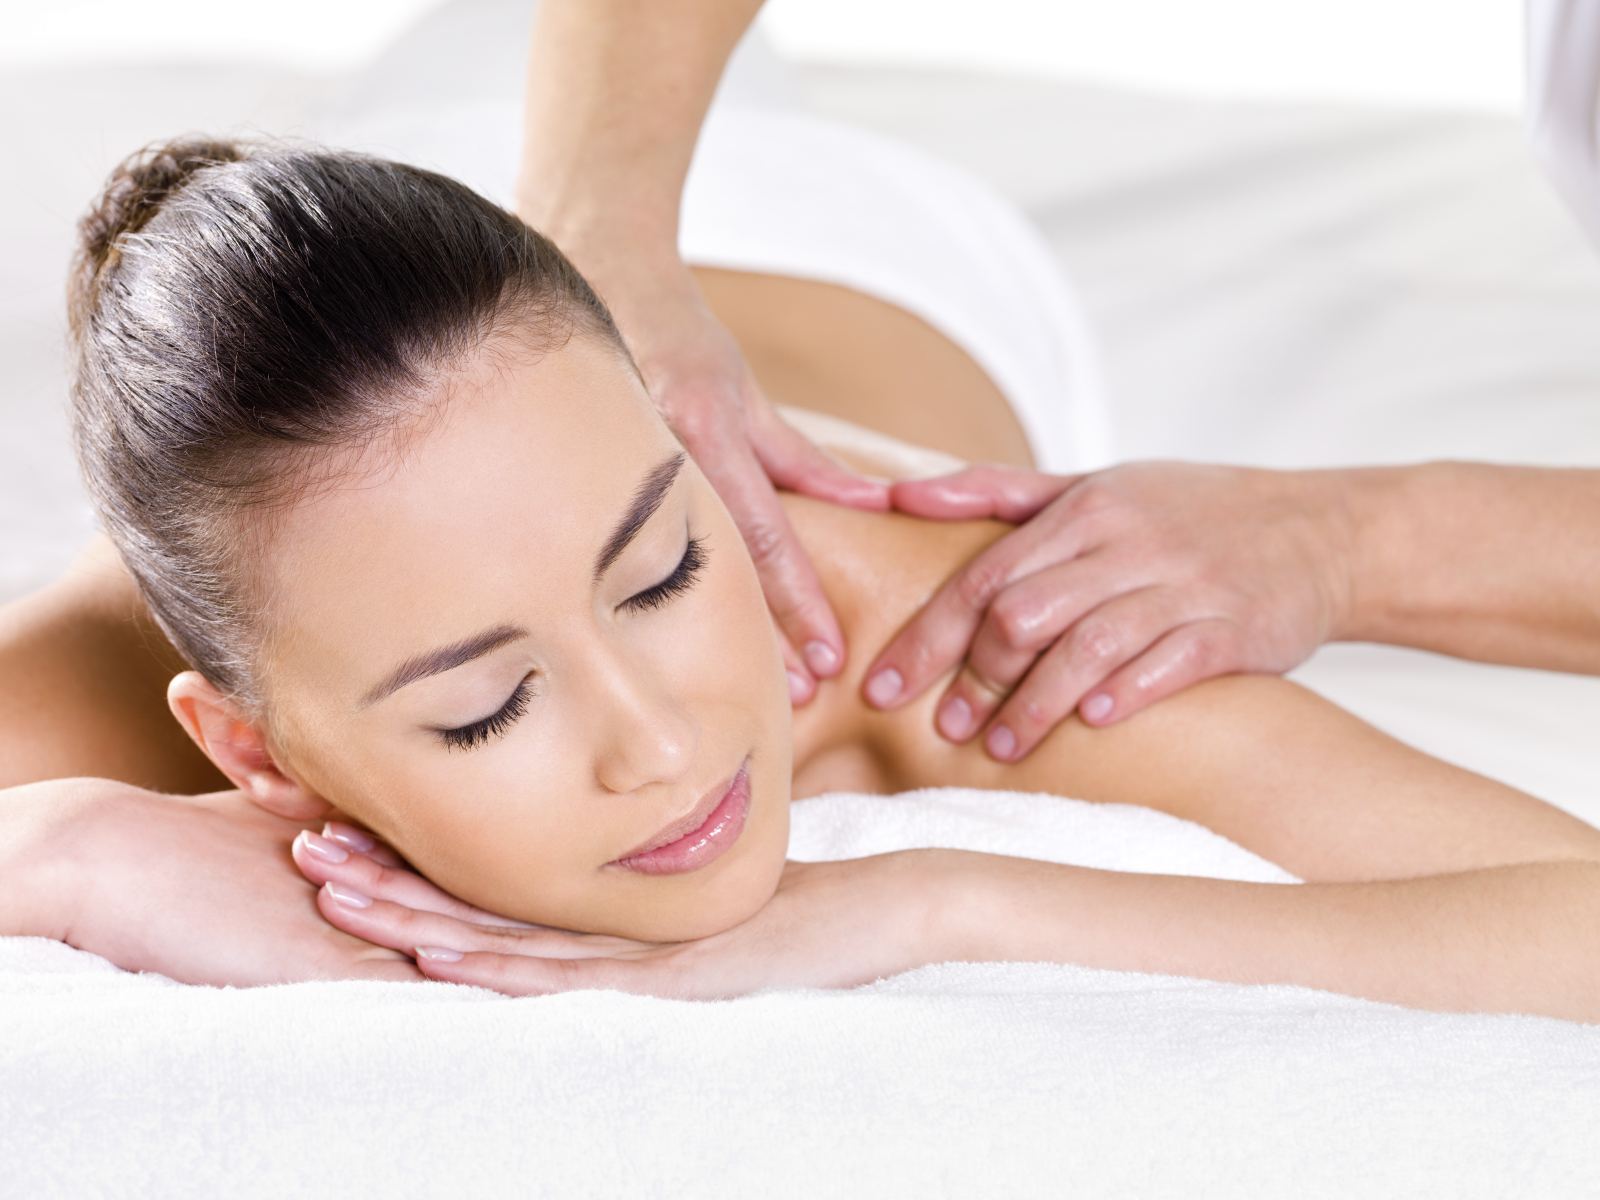 Massage therapies and tricks to improve its effectiveness.